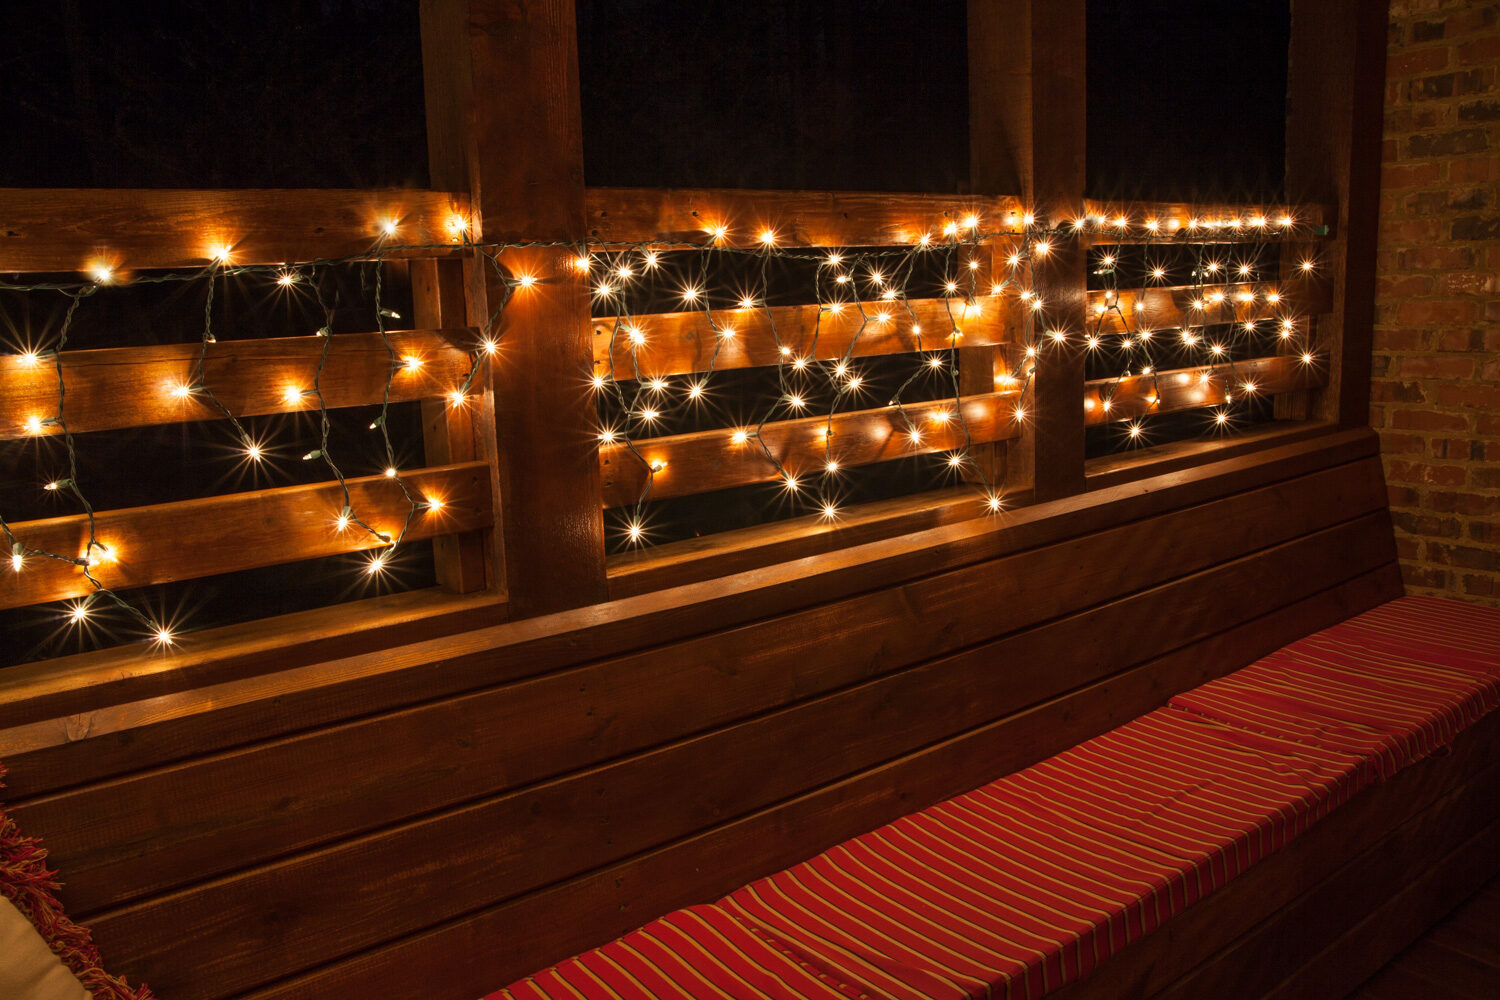 create beautiful outdoor lighting by hanging white lights from decks and patios